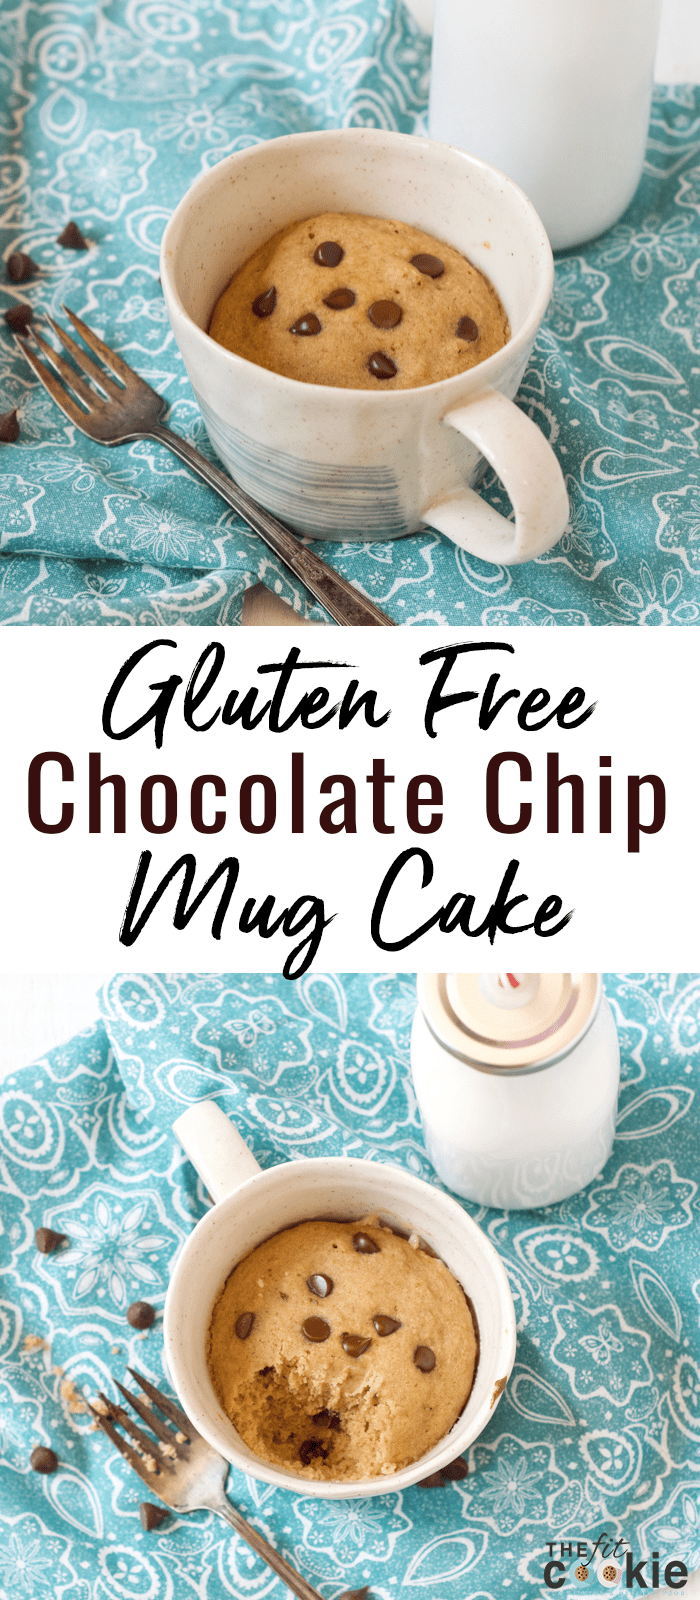 Bake a delicious cake without turning on your oven! This little gluten free Chocolate Chip Mug Cake is perfect for one (or two if you want to share!). This mug cake is not only gluten free, it's also dairy free, vegan, and nut free - @TheFitCookie #glutenfree #vegan #cake